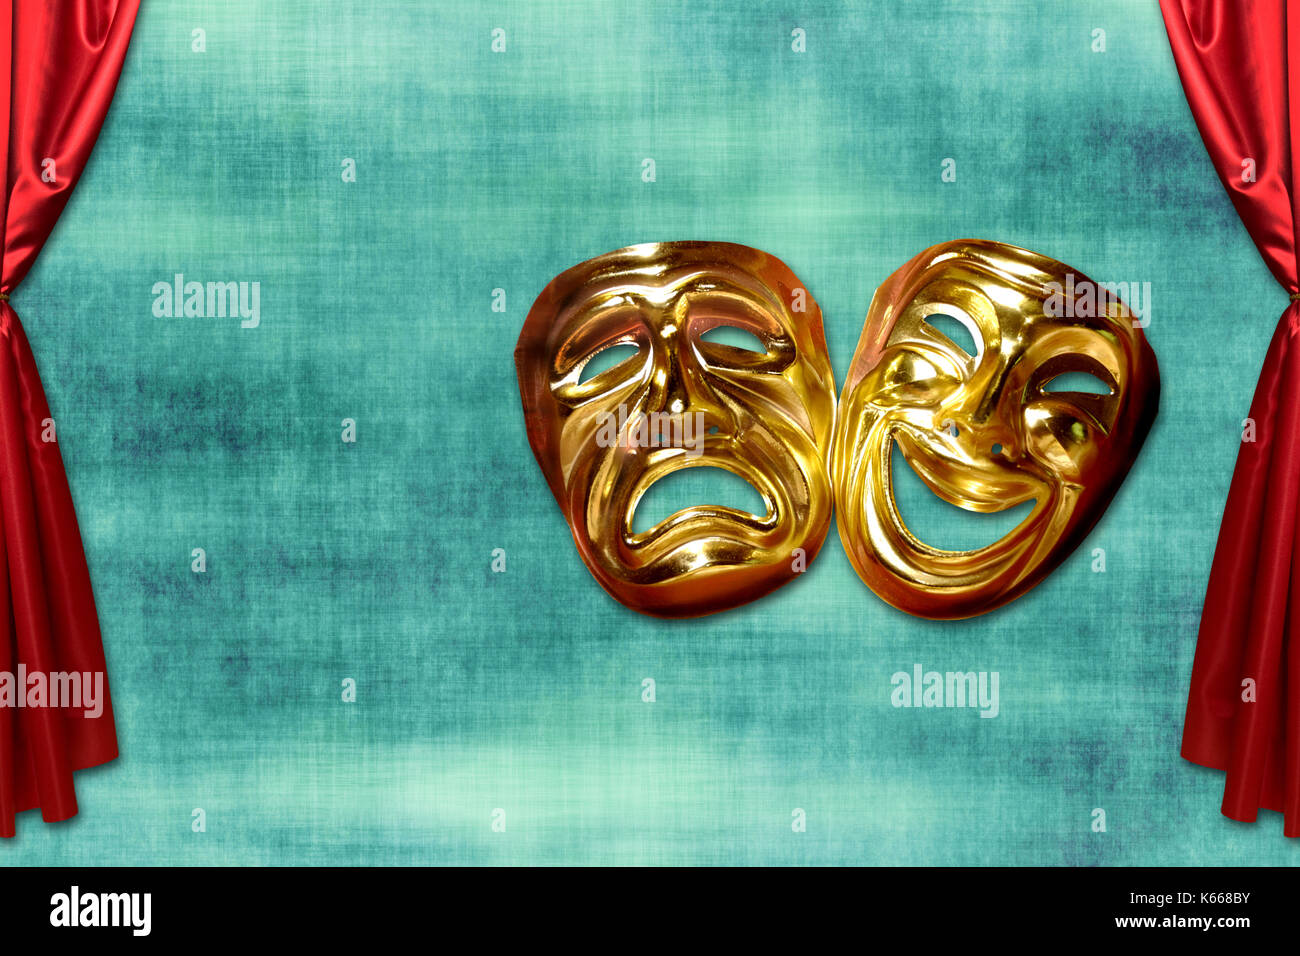 theatrical mask of tragedy and comedy - Stock Image